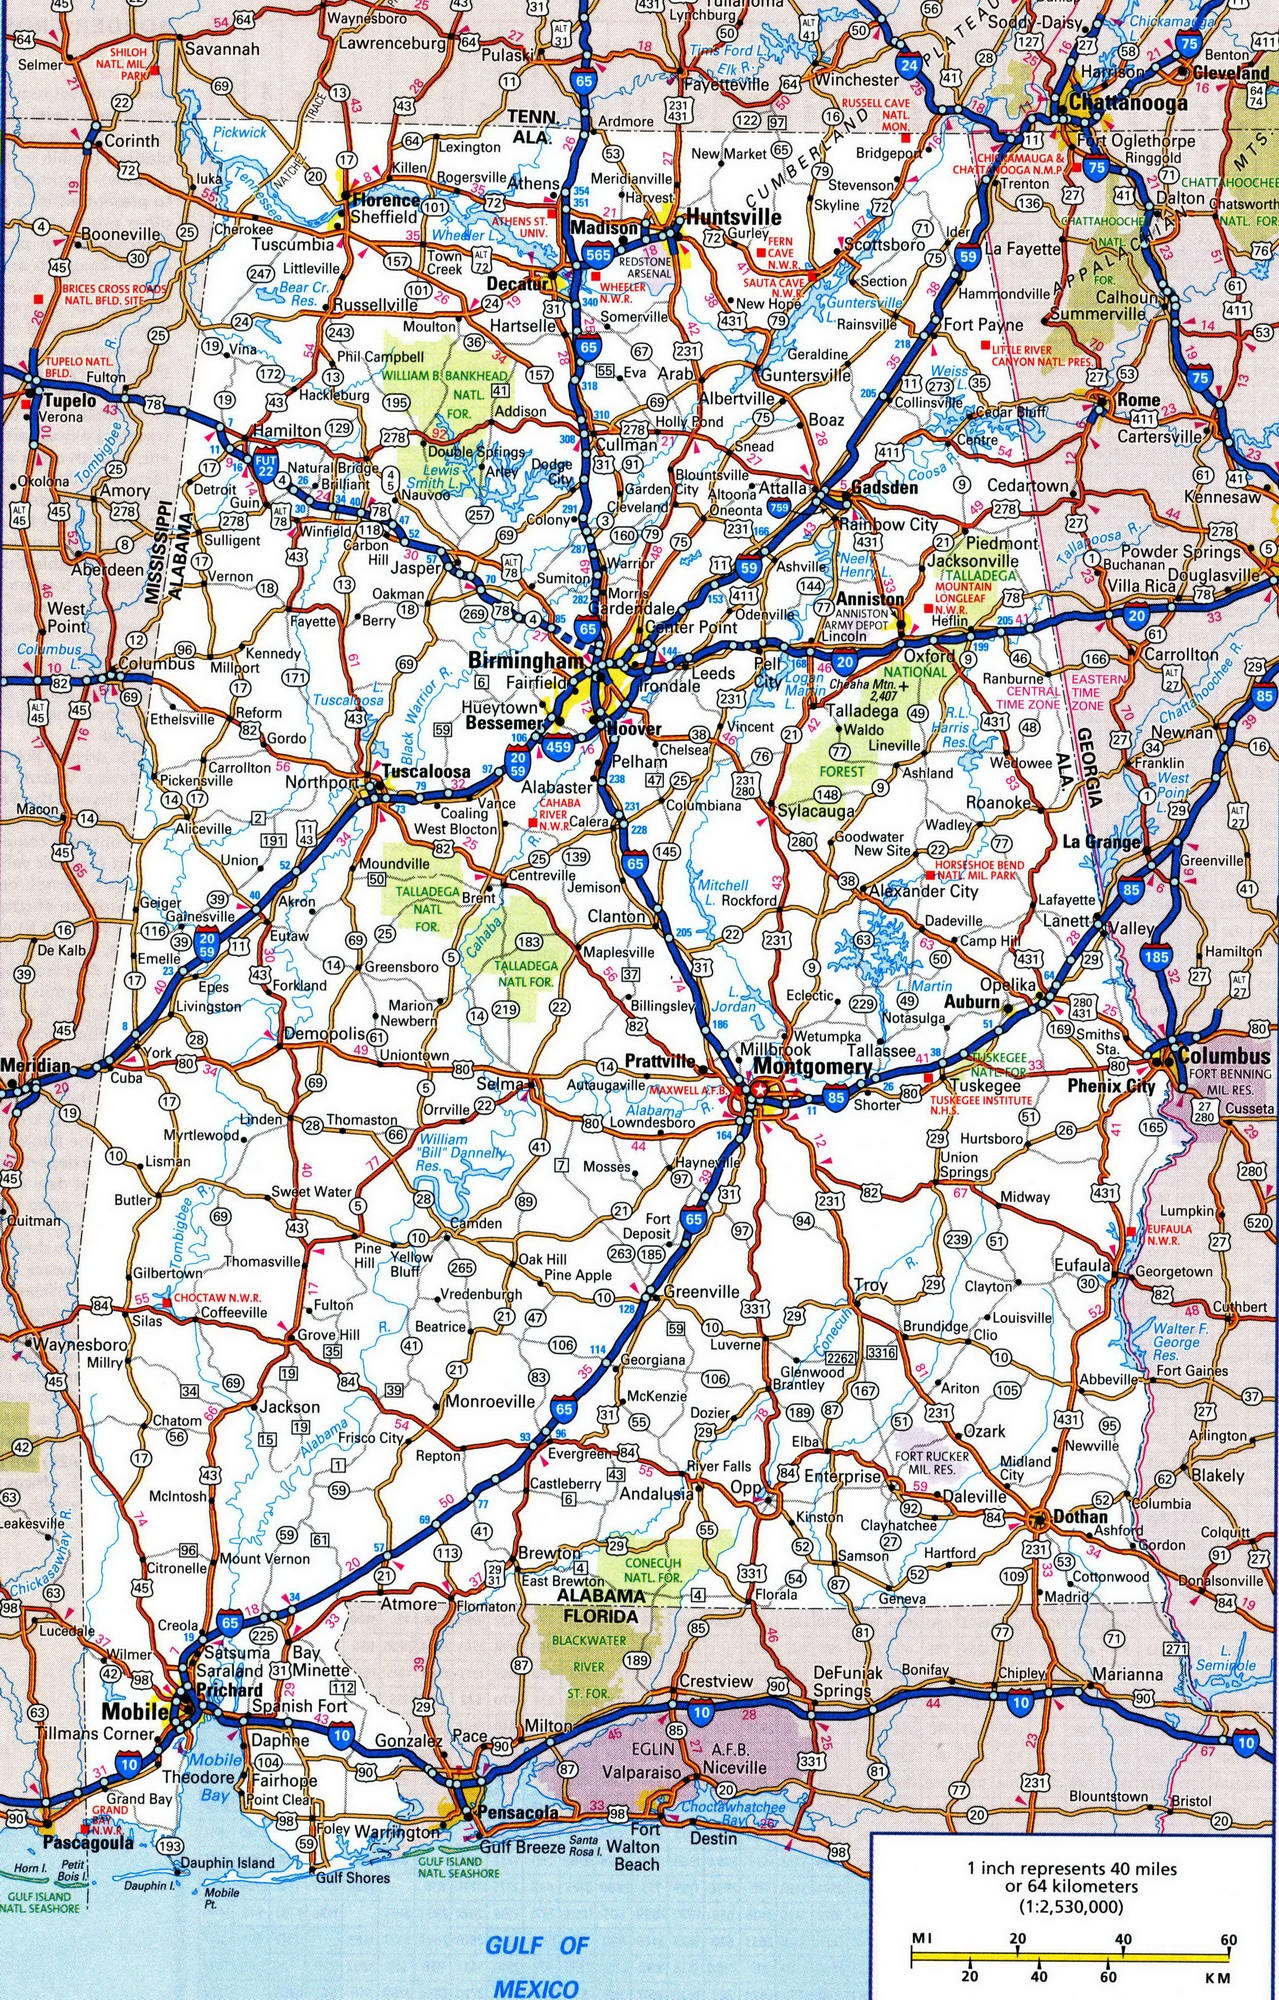 Alabama Road Map | High Resolution Road Map of Alabama